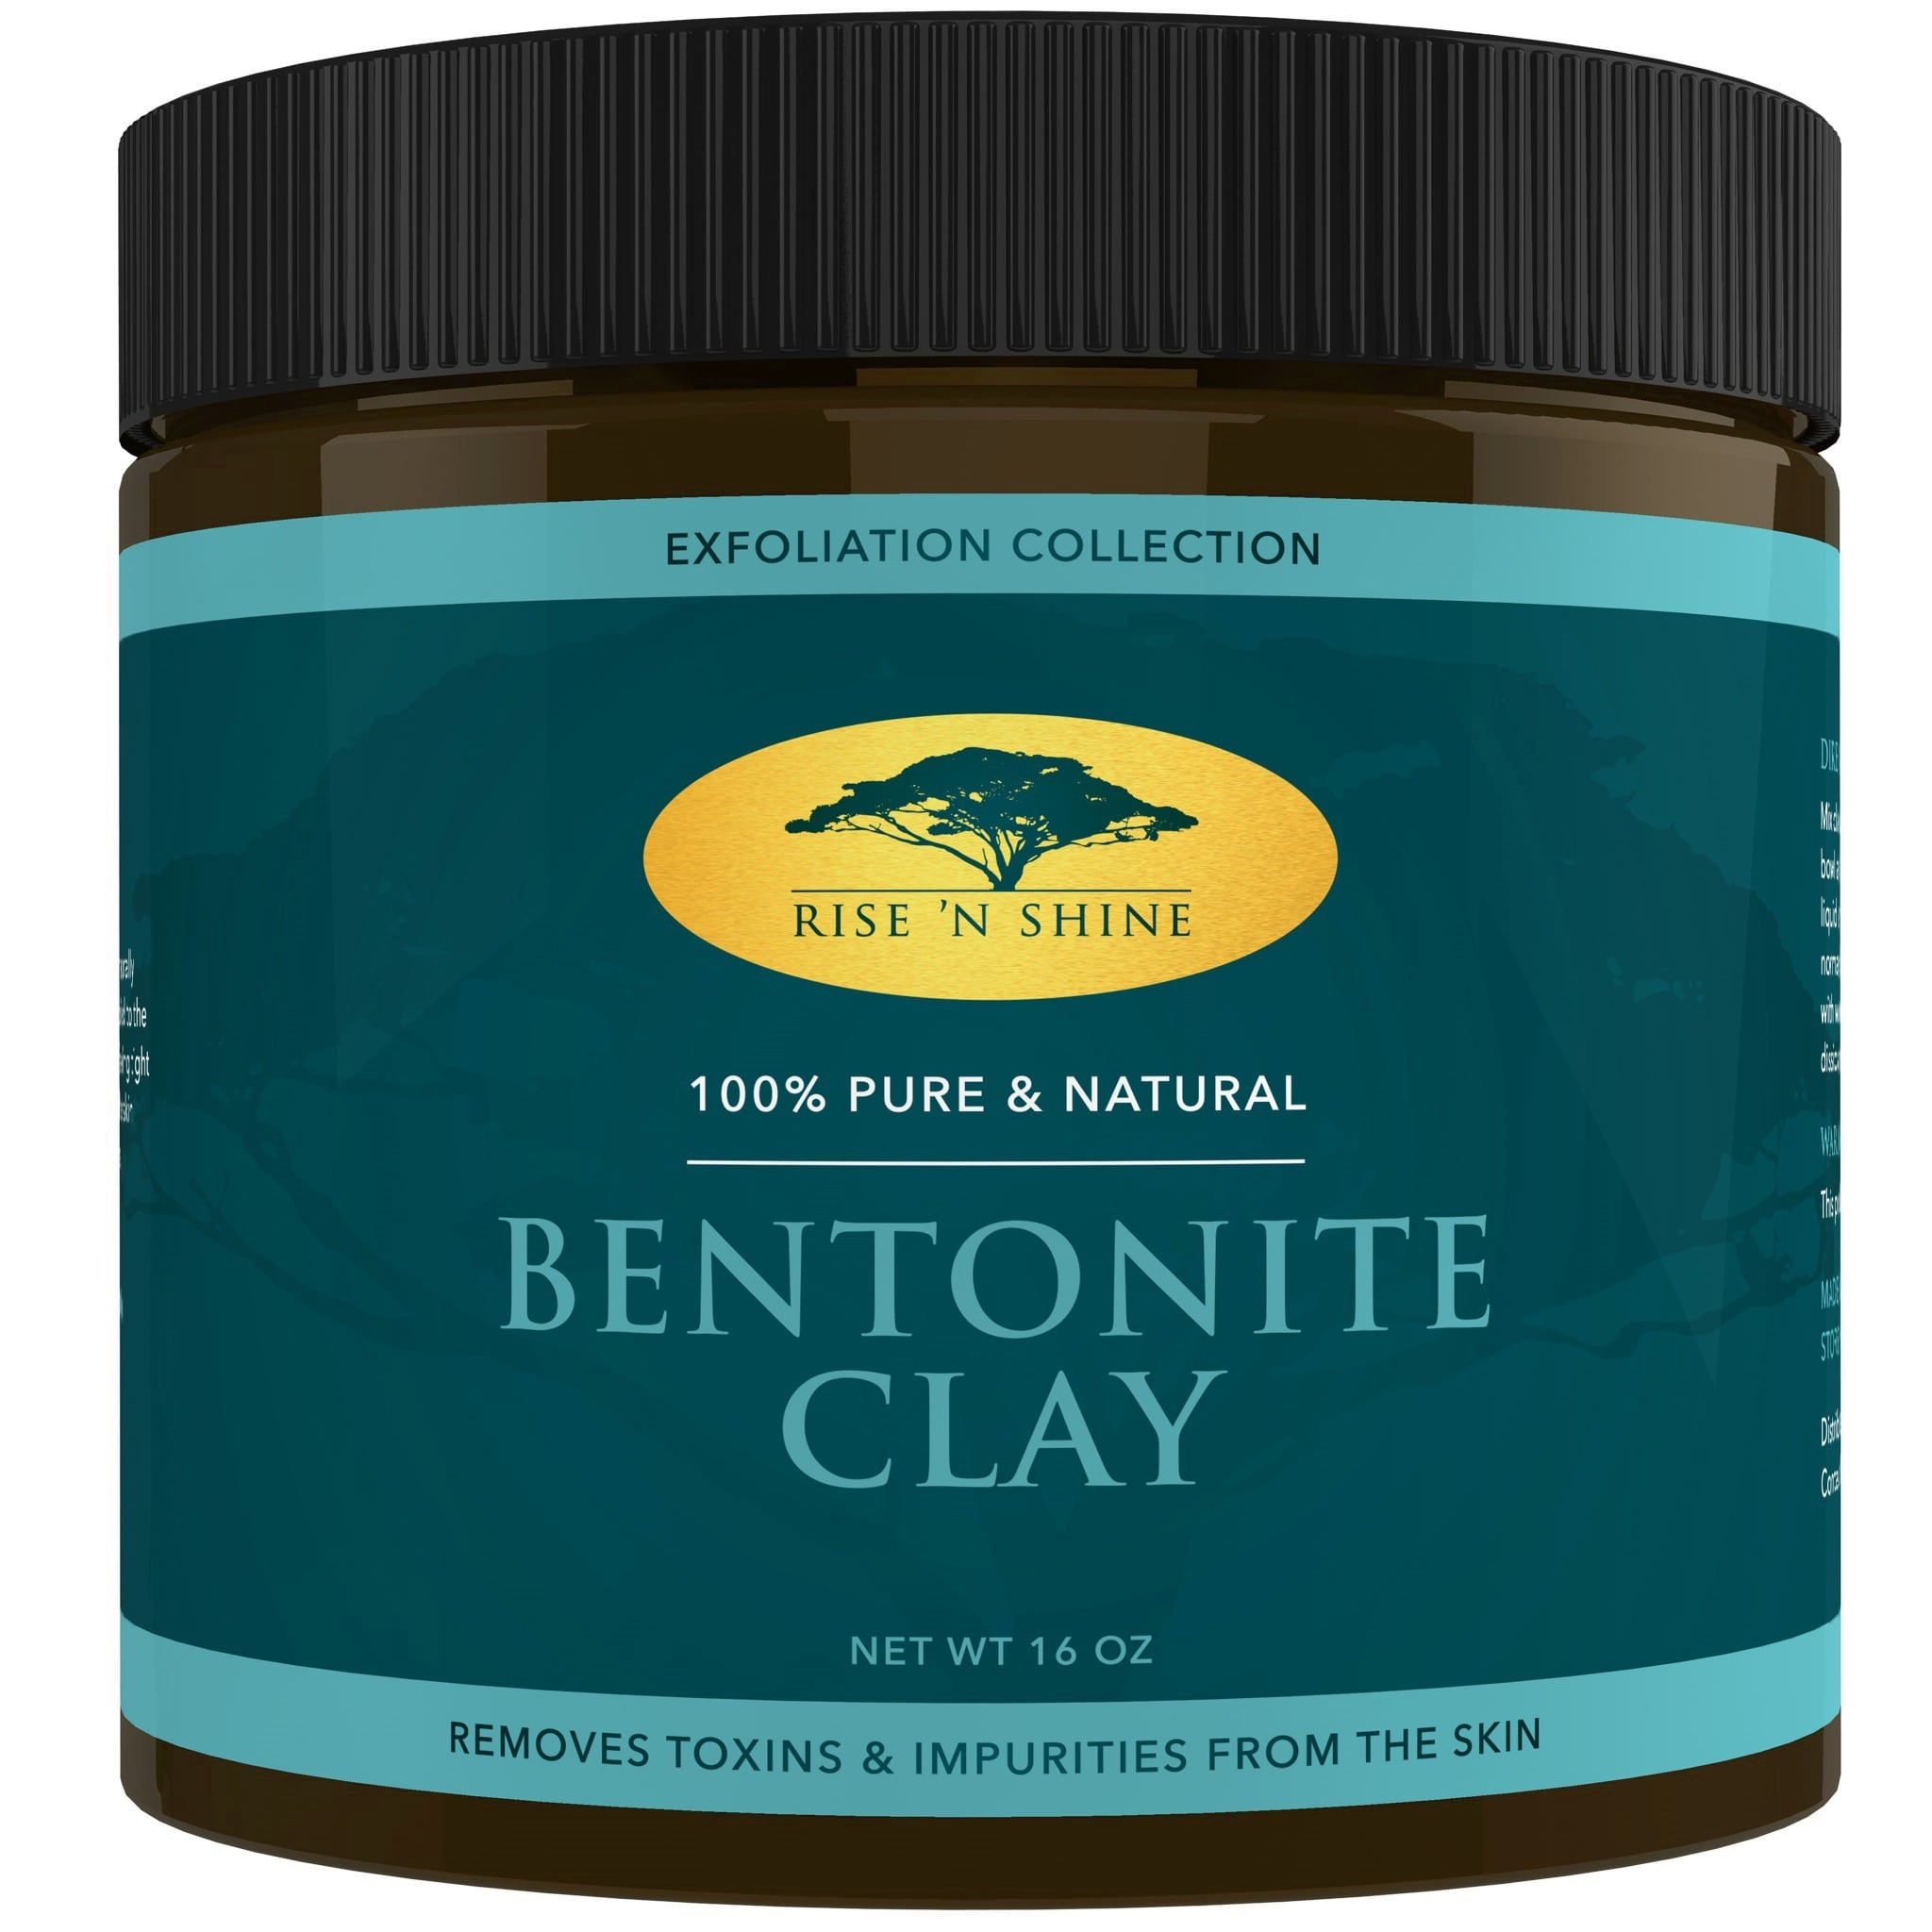 Rise 'N Shine  Bentonite Indian 16 oz. Healing Clay All Natural Face Mask Detox, Skin Pore Cleansing and Rejuvenates Skin